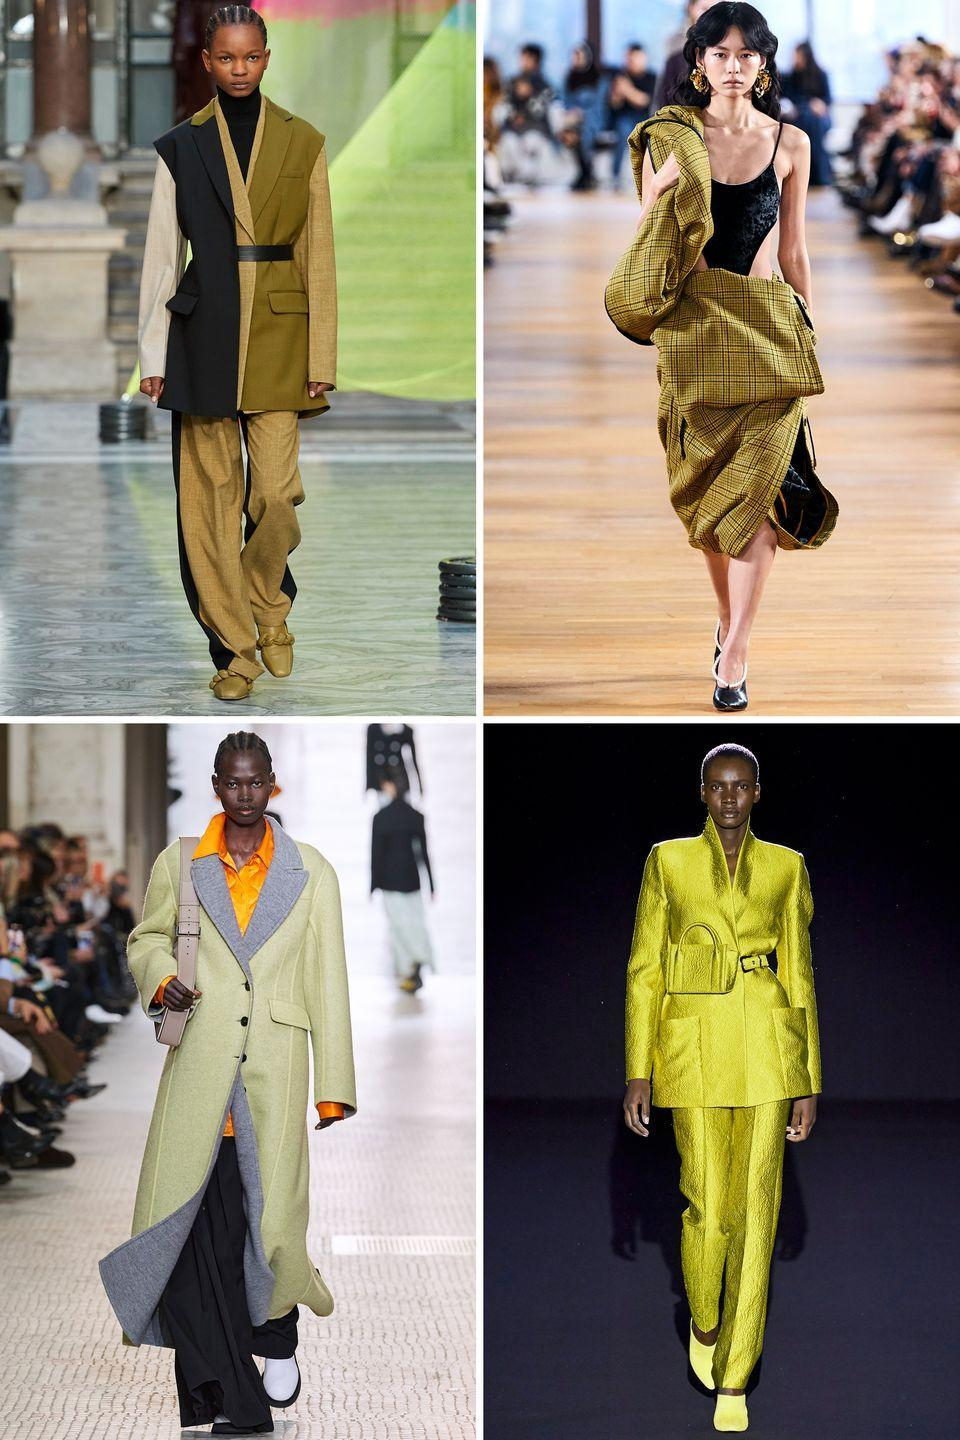 <p>After popping up on several fall 2020 runways, green in shades of chartreuse, mint, and olive quickly began taking over Instagram and the street style scene. The verdant hue feels fresh, especially for the fall/winter season, and looks good in both apparel and accessory forms.</p><p><em>Clockwise from top left: Roksanda, Y/Project, Sally Lapointe, Nina Ricci</em></p>